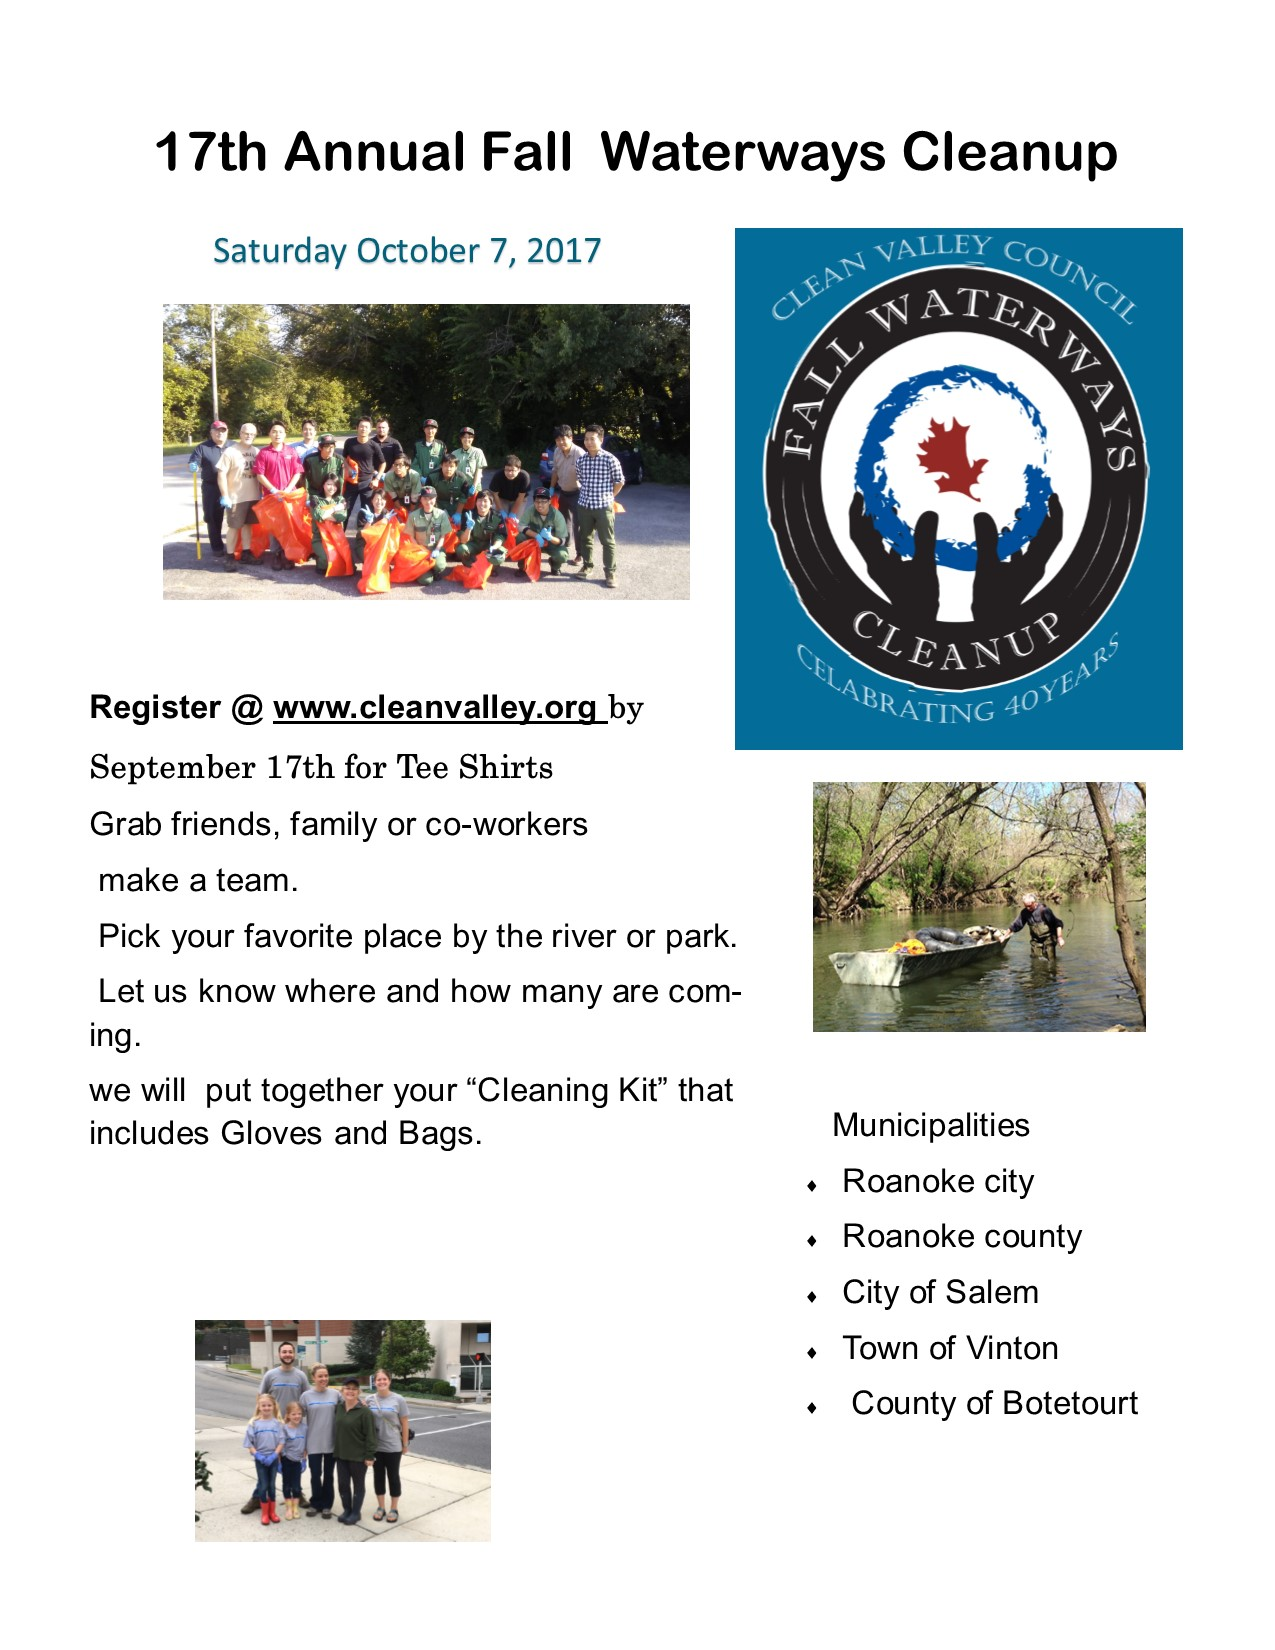 17th Fall Waterways Cleanup